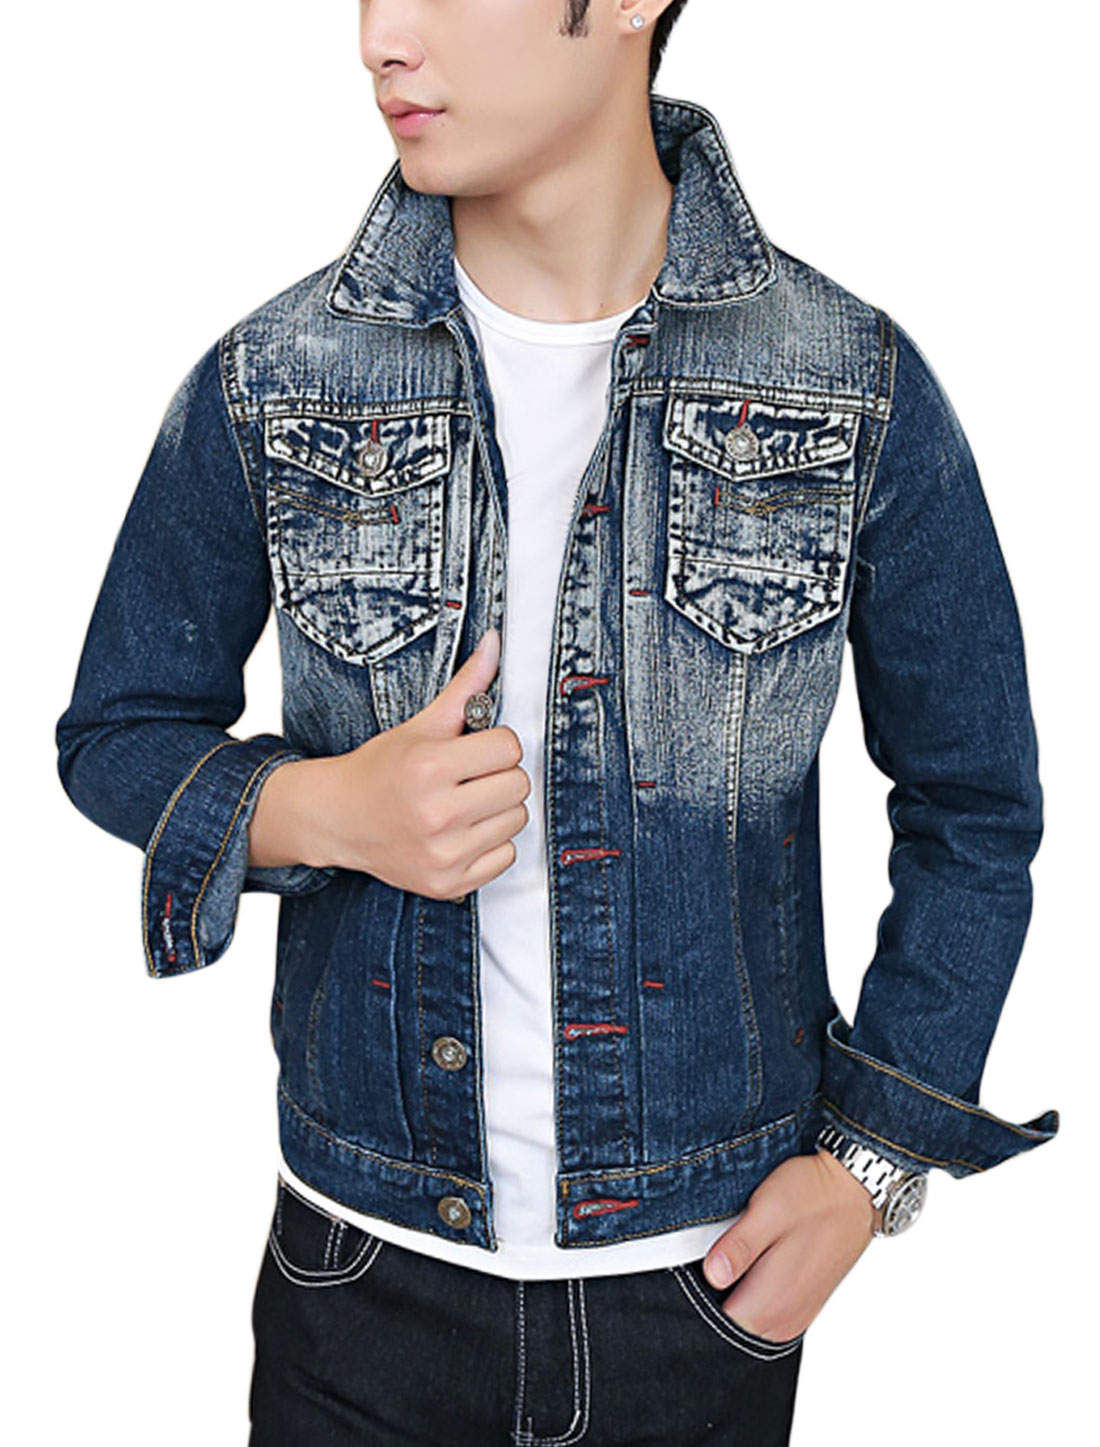 Men Signle Breasted Studs Embellished Decor Stylish Jean Jacket Dark Blue M